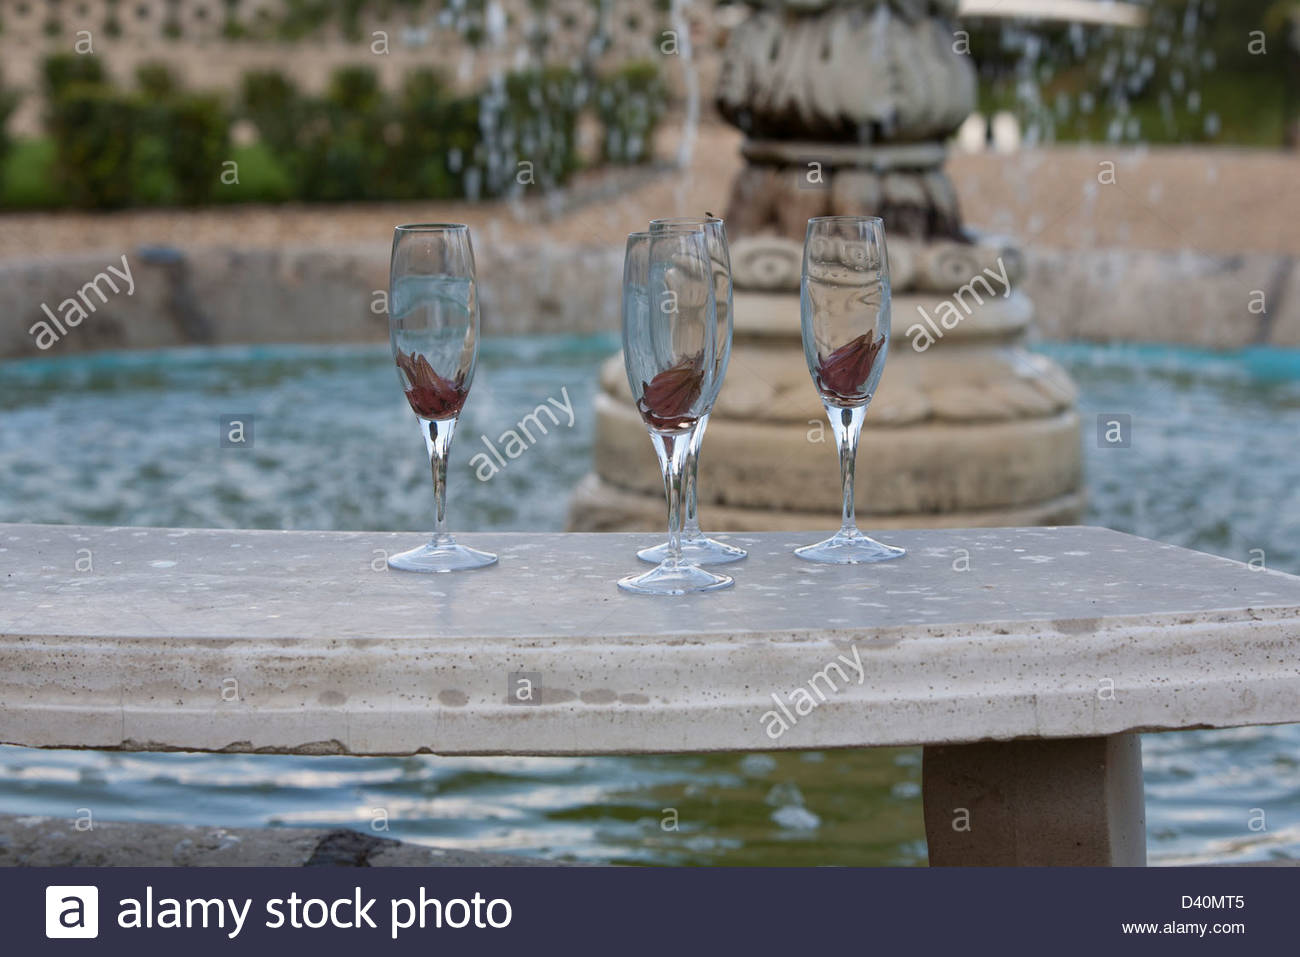 Hibiscus flowers stock photos hibiscus flowers stock images alamy champagne glasses with hibiscus flowers on a stone seat beside a fountain stock image izmirmasajfo